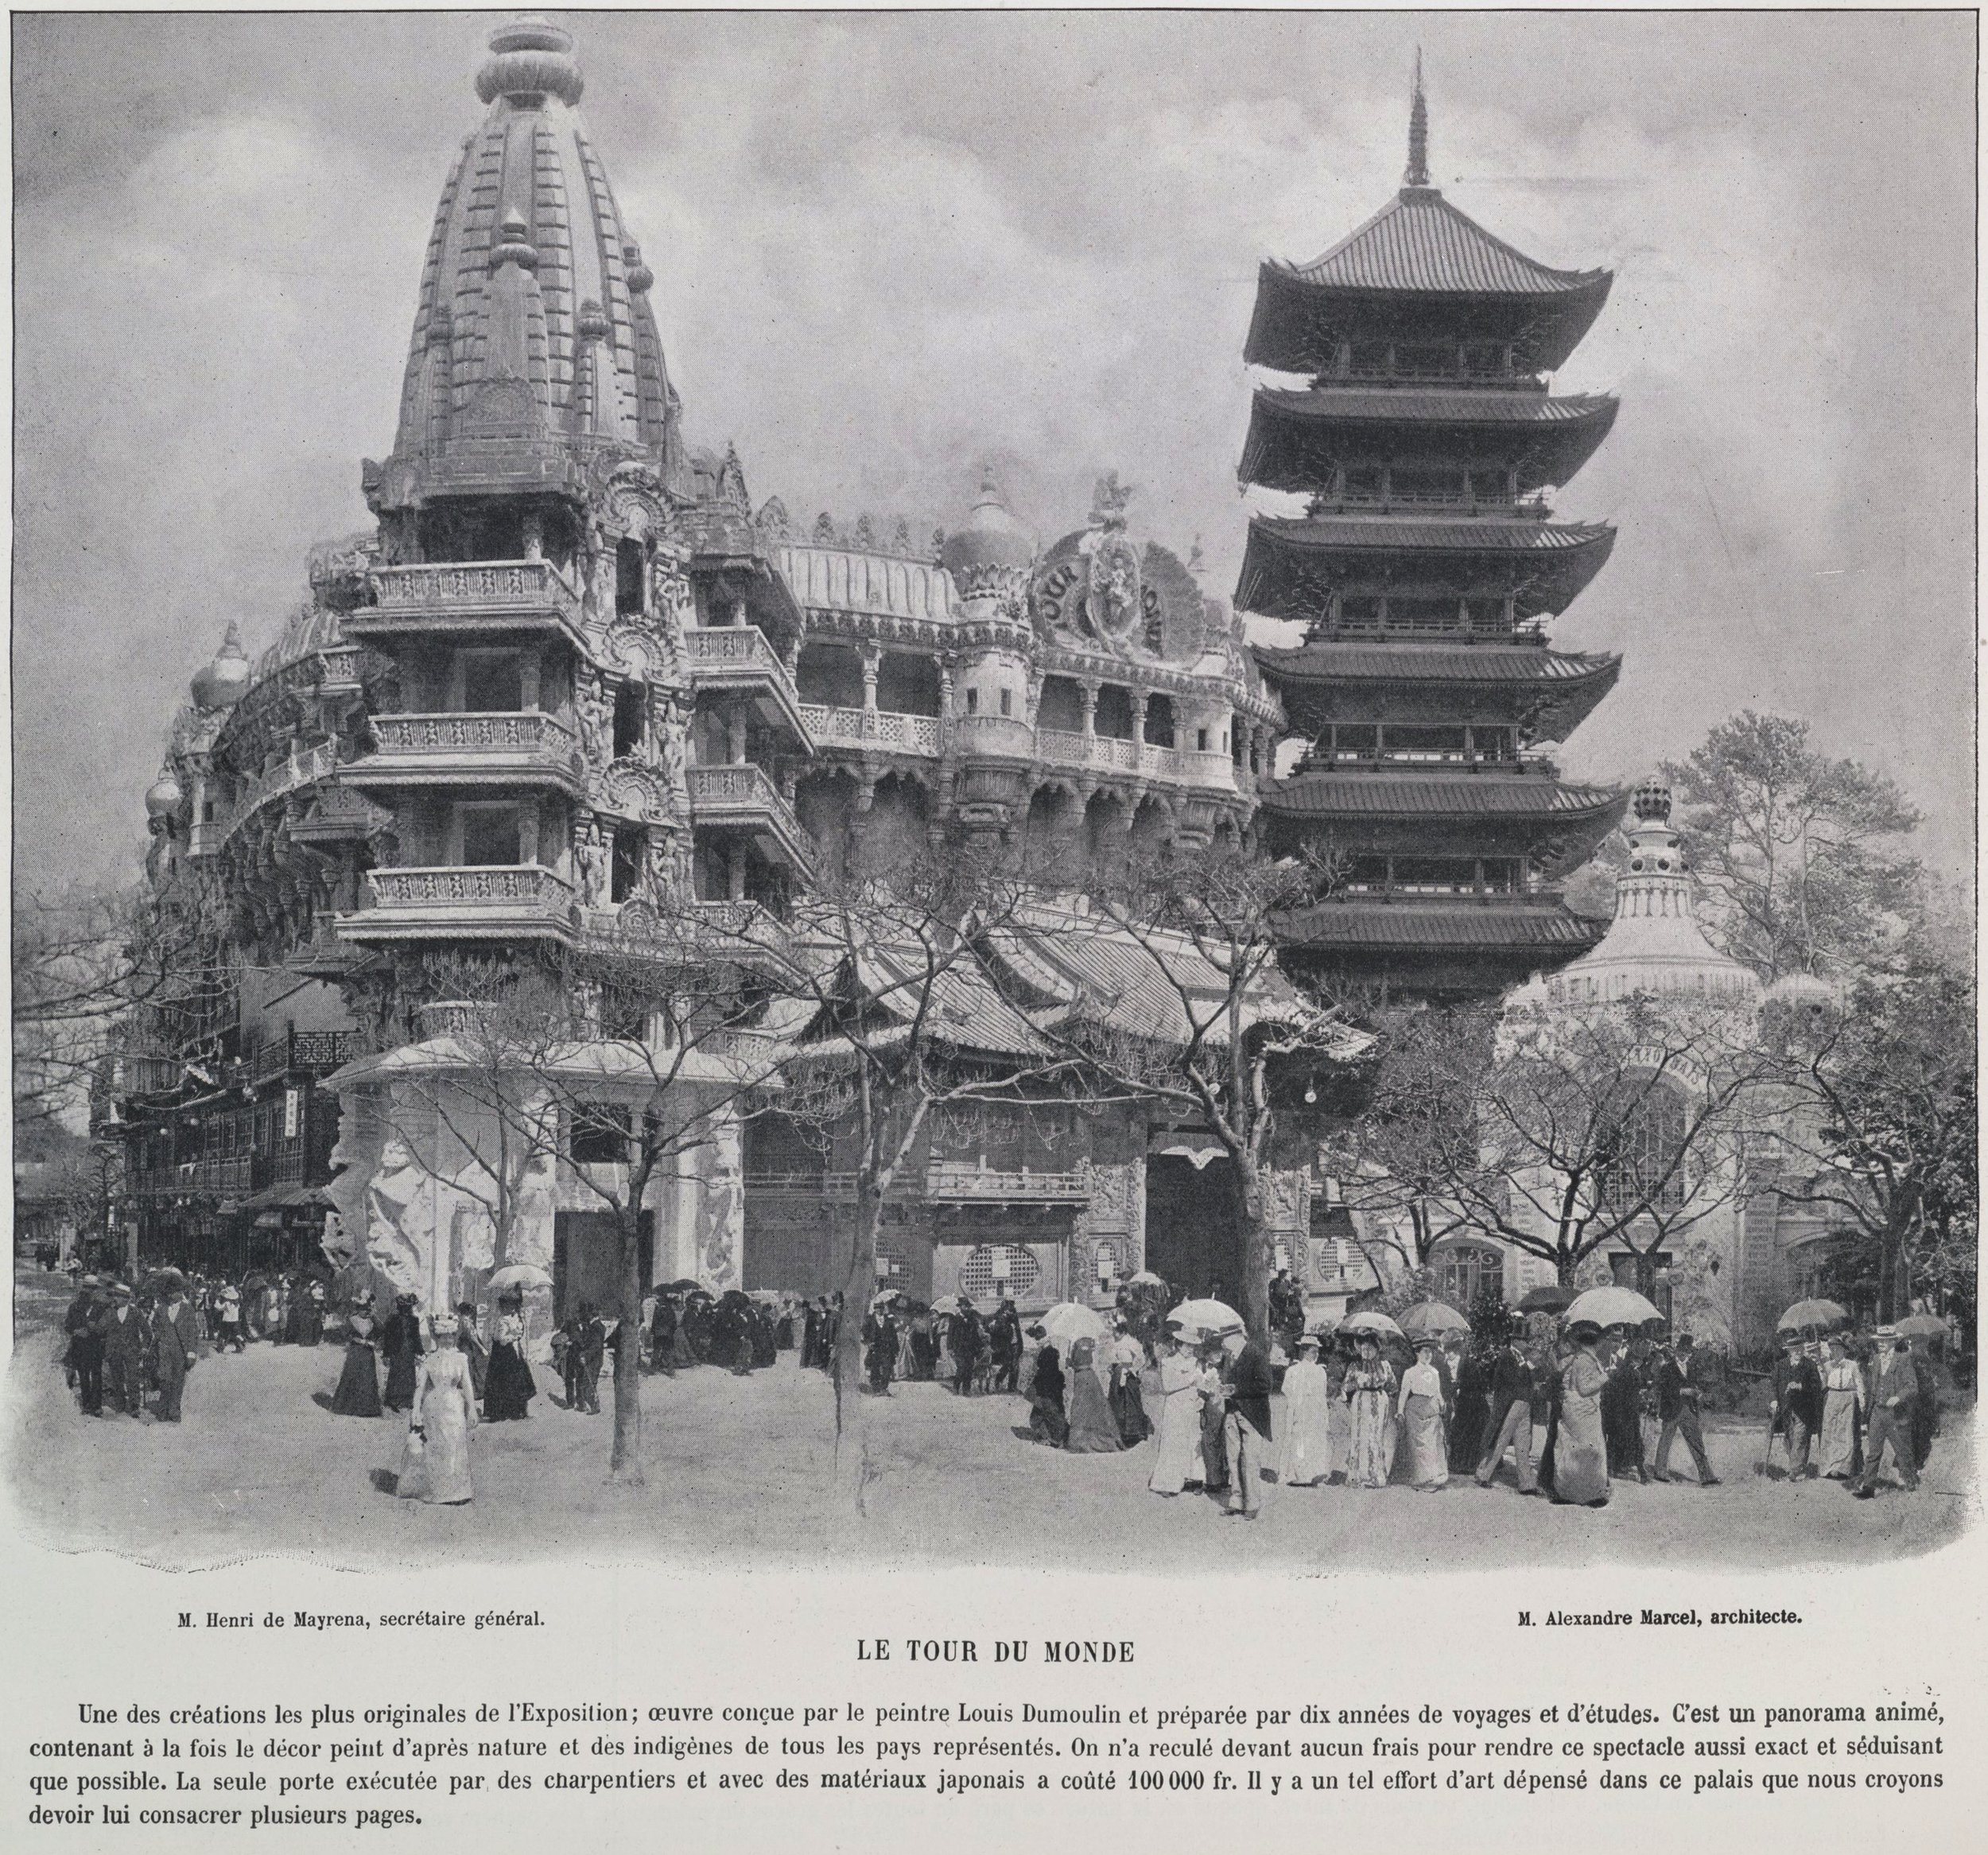 The  Tour du Monde   was a building composed of different architectural traits and characteristics, and represented a sample of the world's architectural styles. 1900